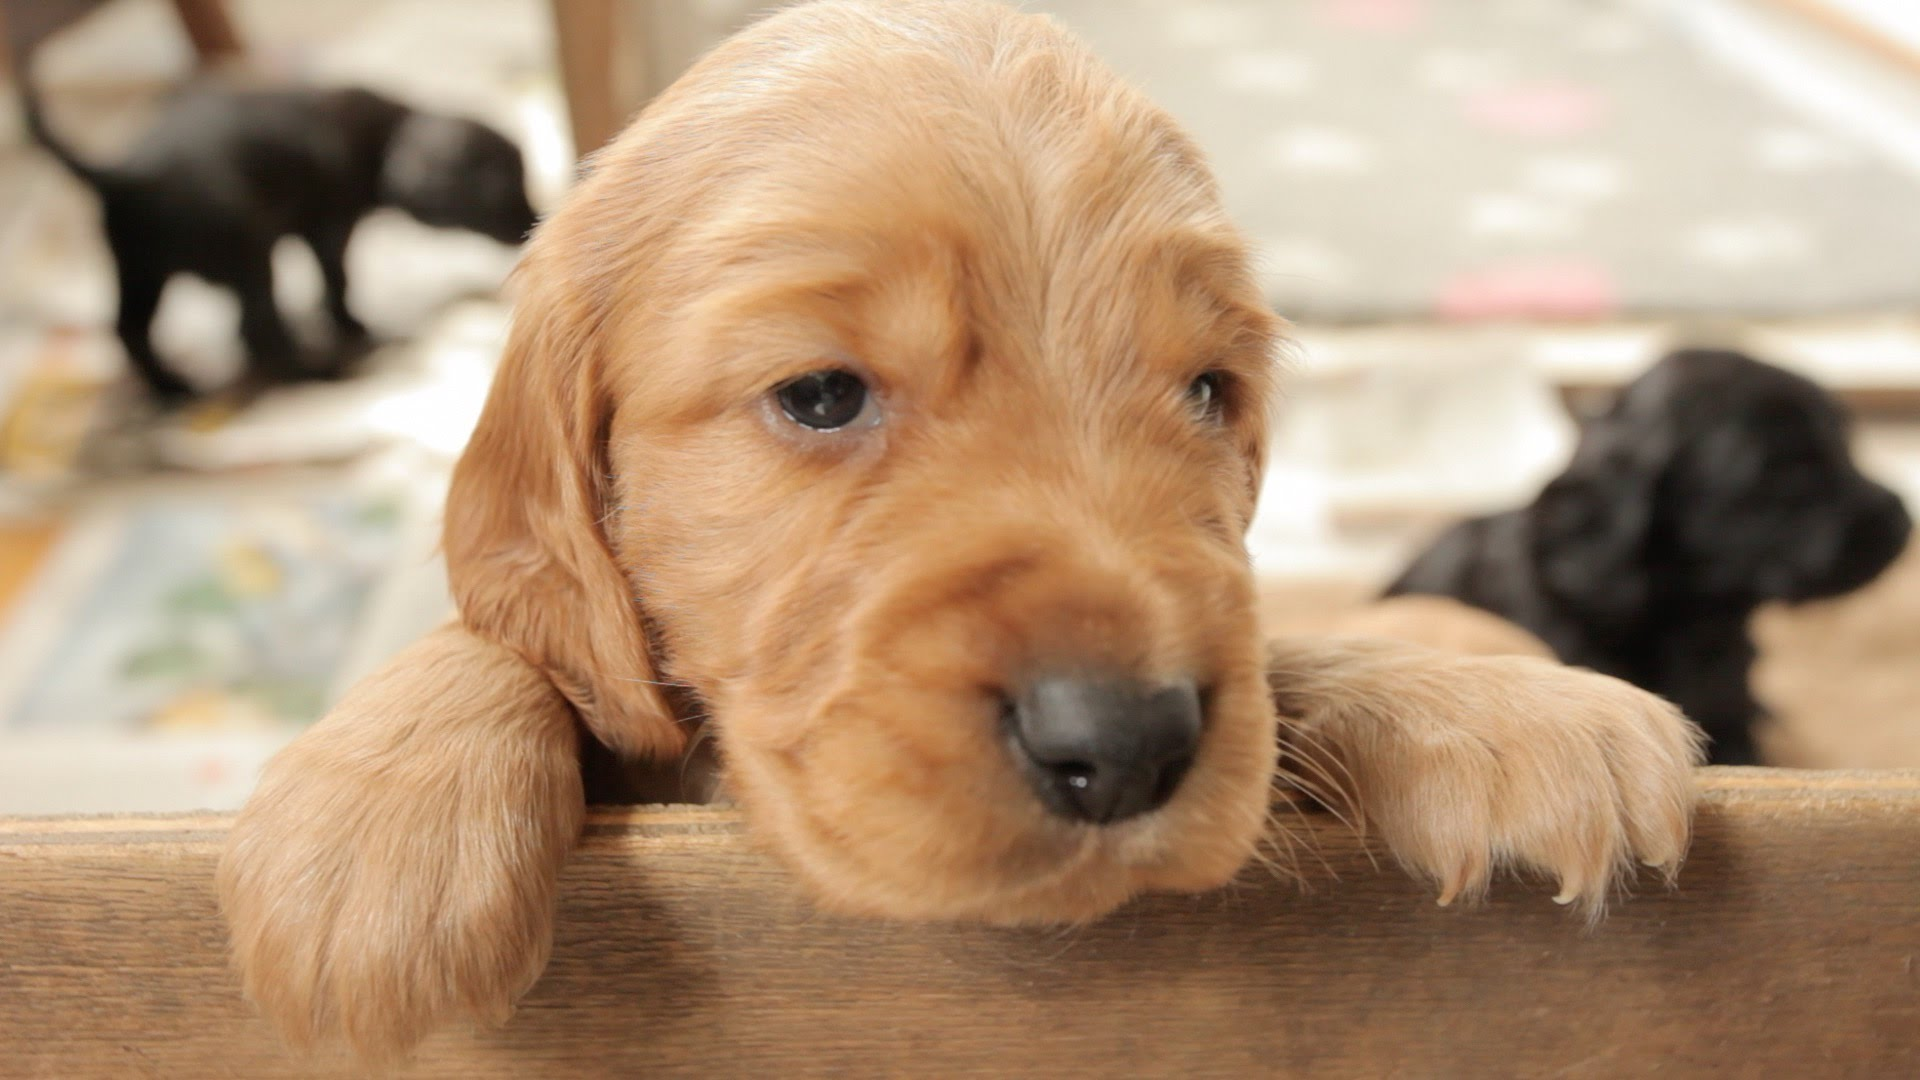 Cocker Spaniel Puppies: 5 Tips for Better Care